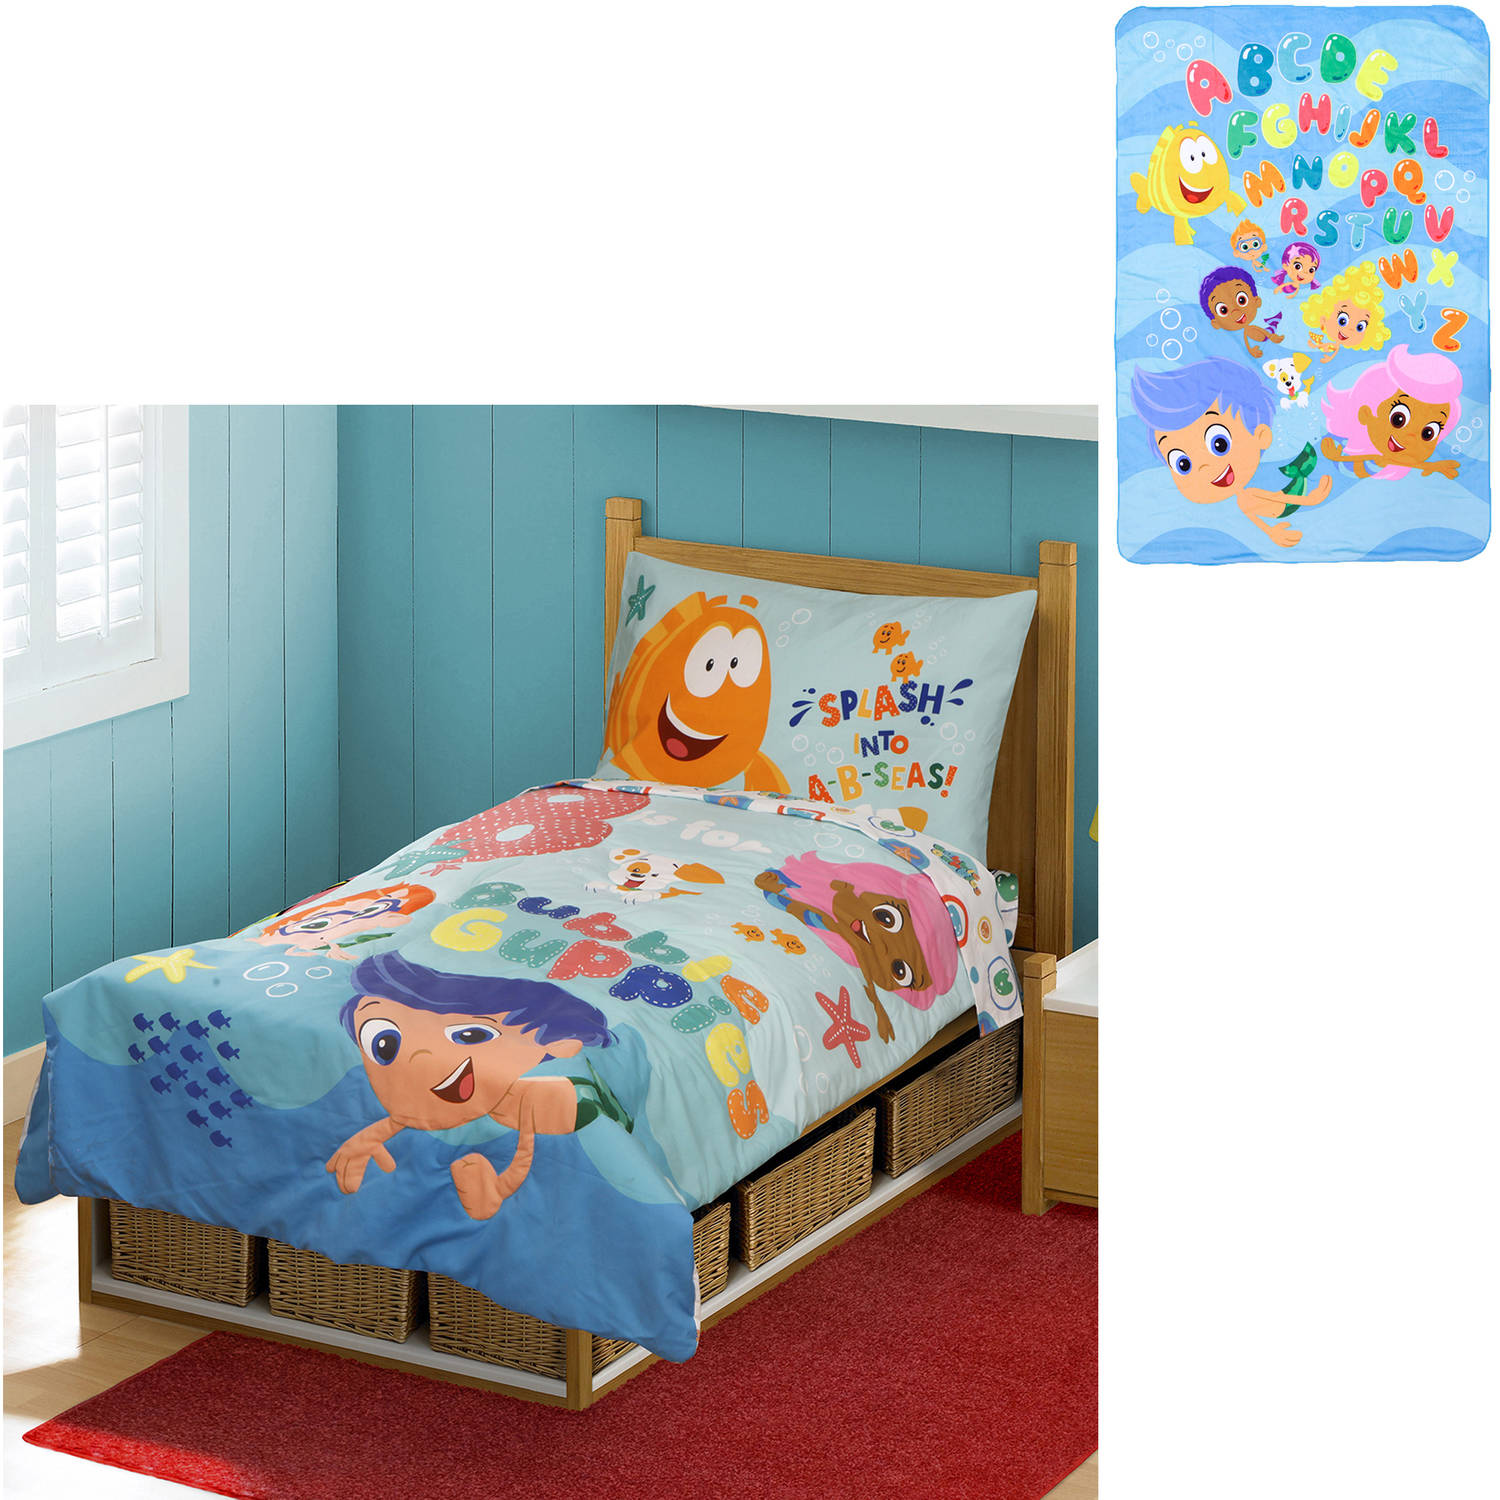 Awesome Bubble Guppies Toddler Bed Set With Bonu